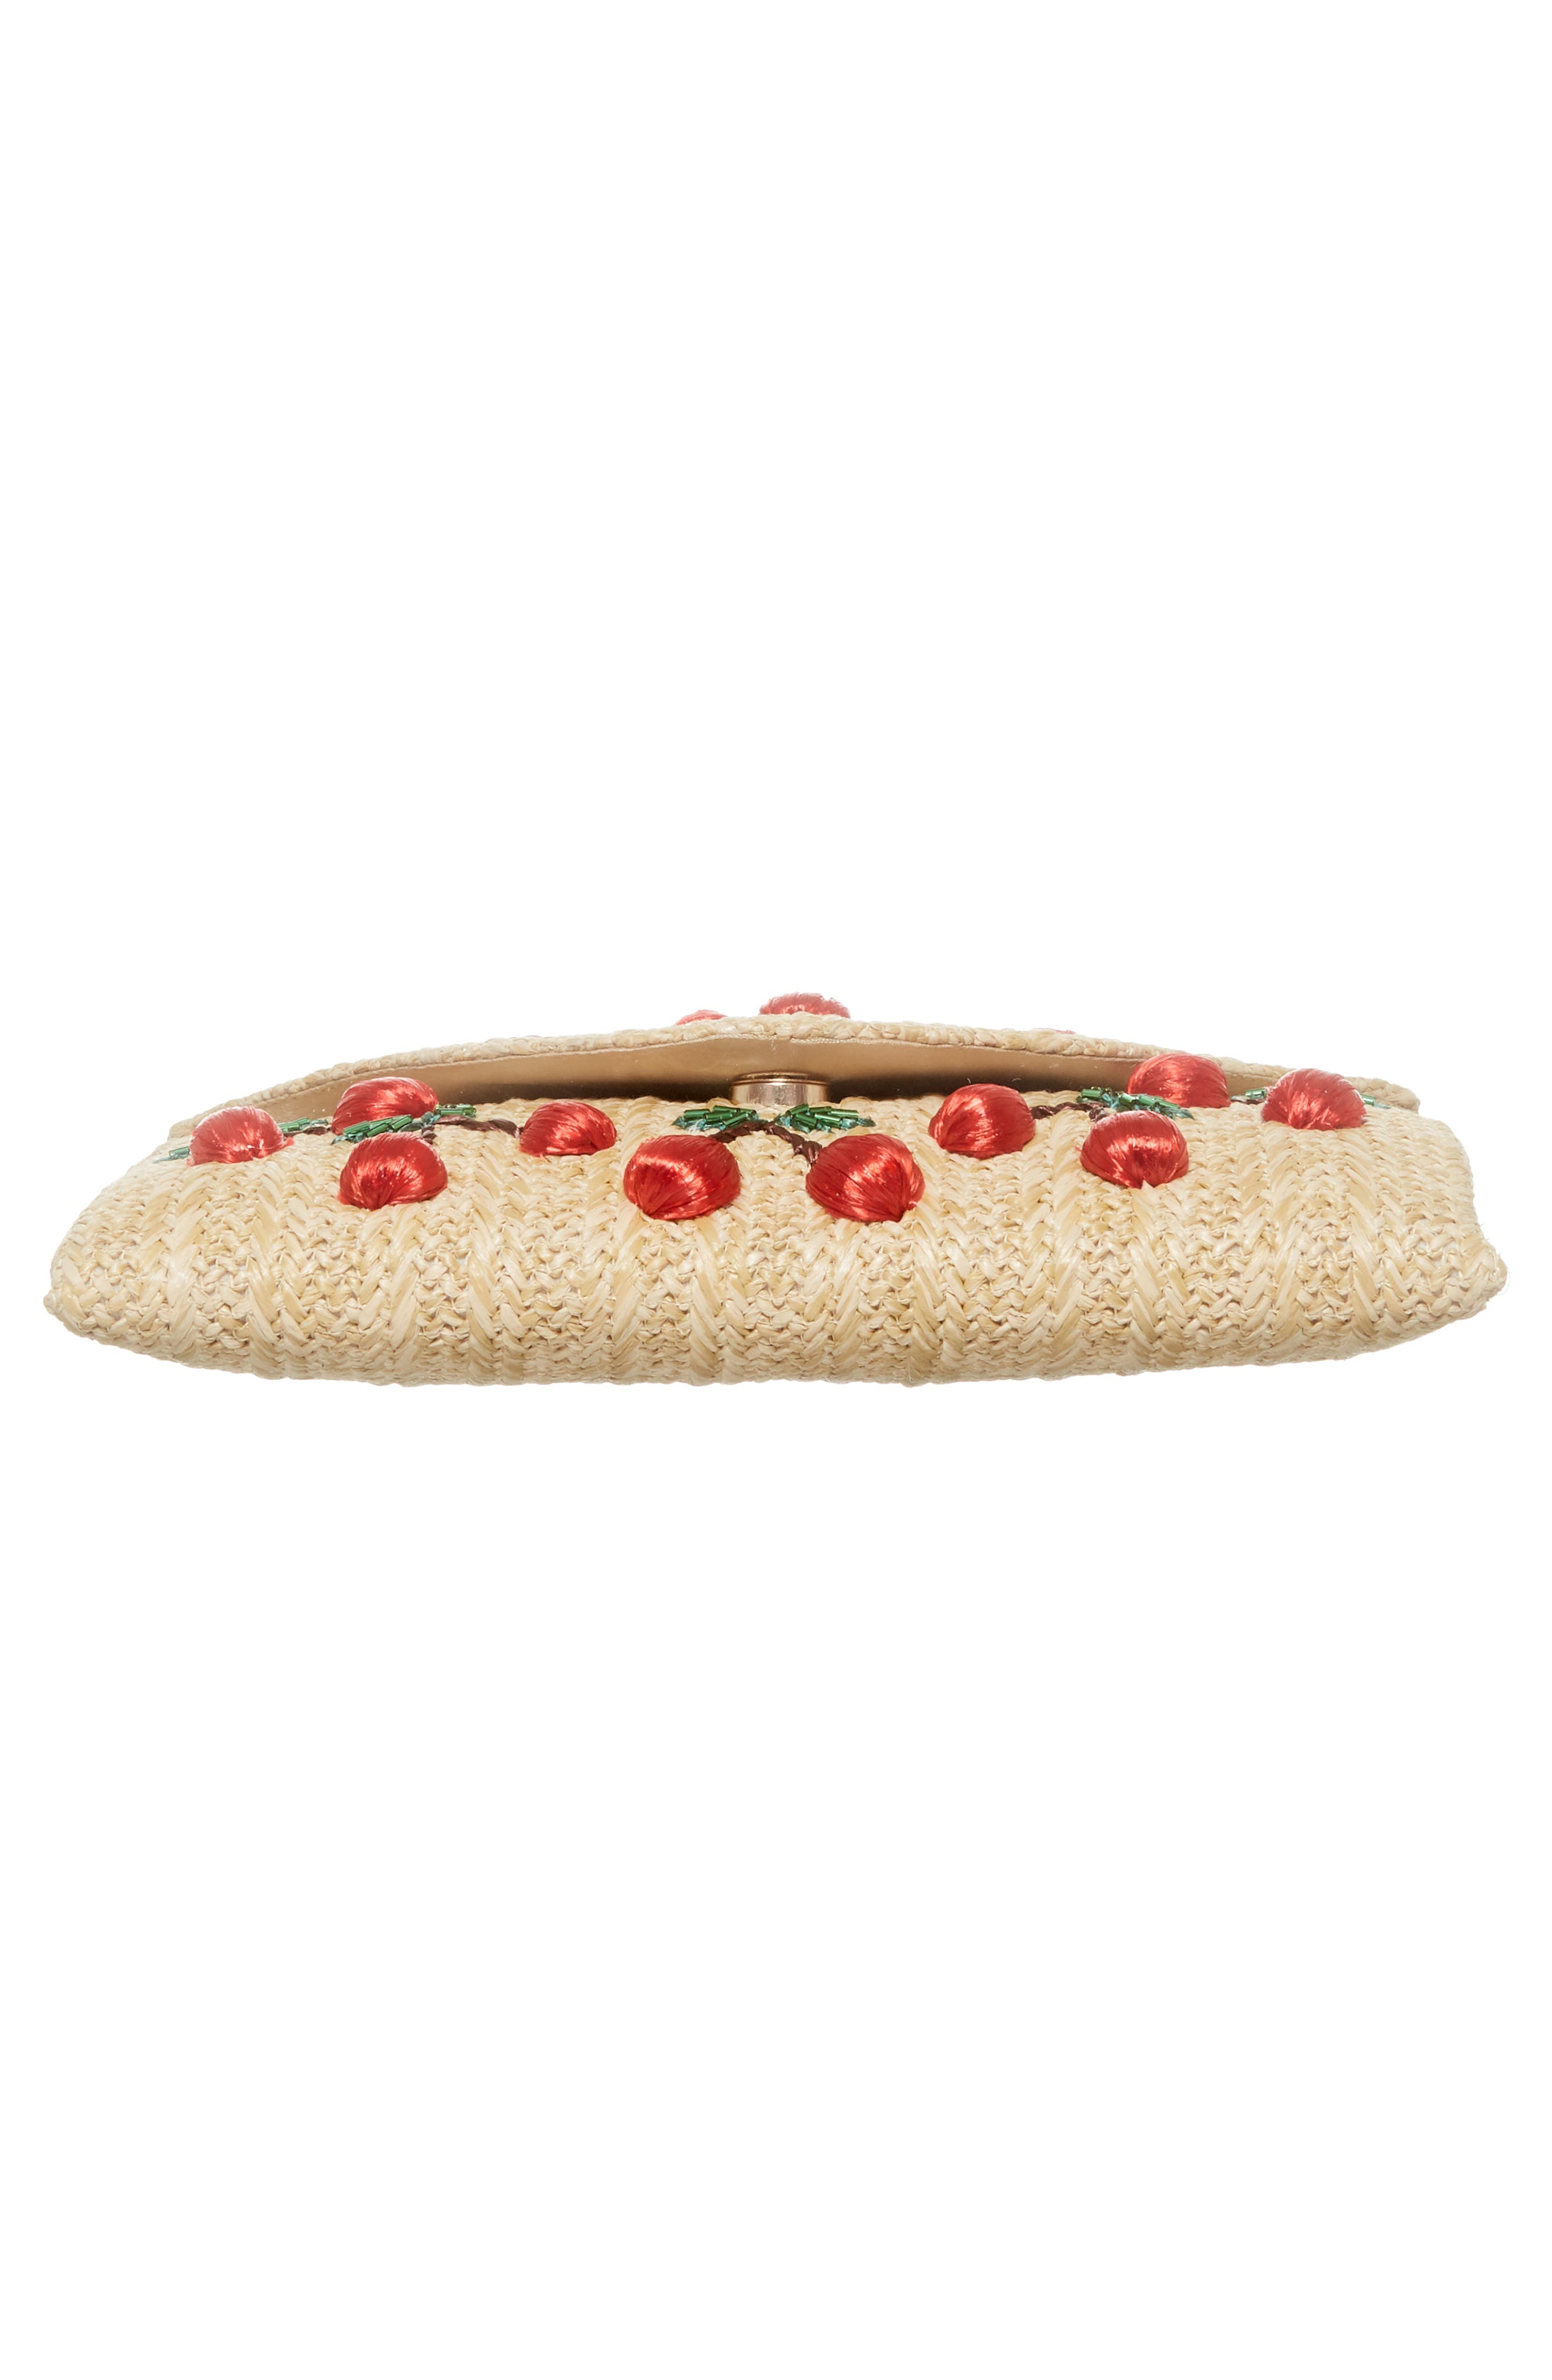 Cherry Embellished Straw Envelope Clutch,                             Alternate thumbnail 6, color,                             235